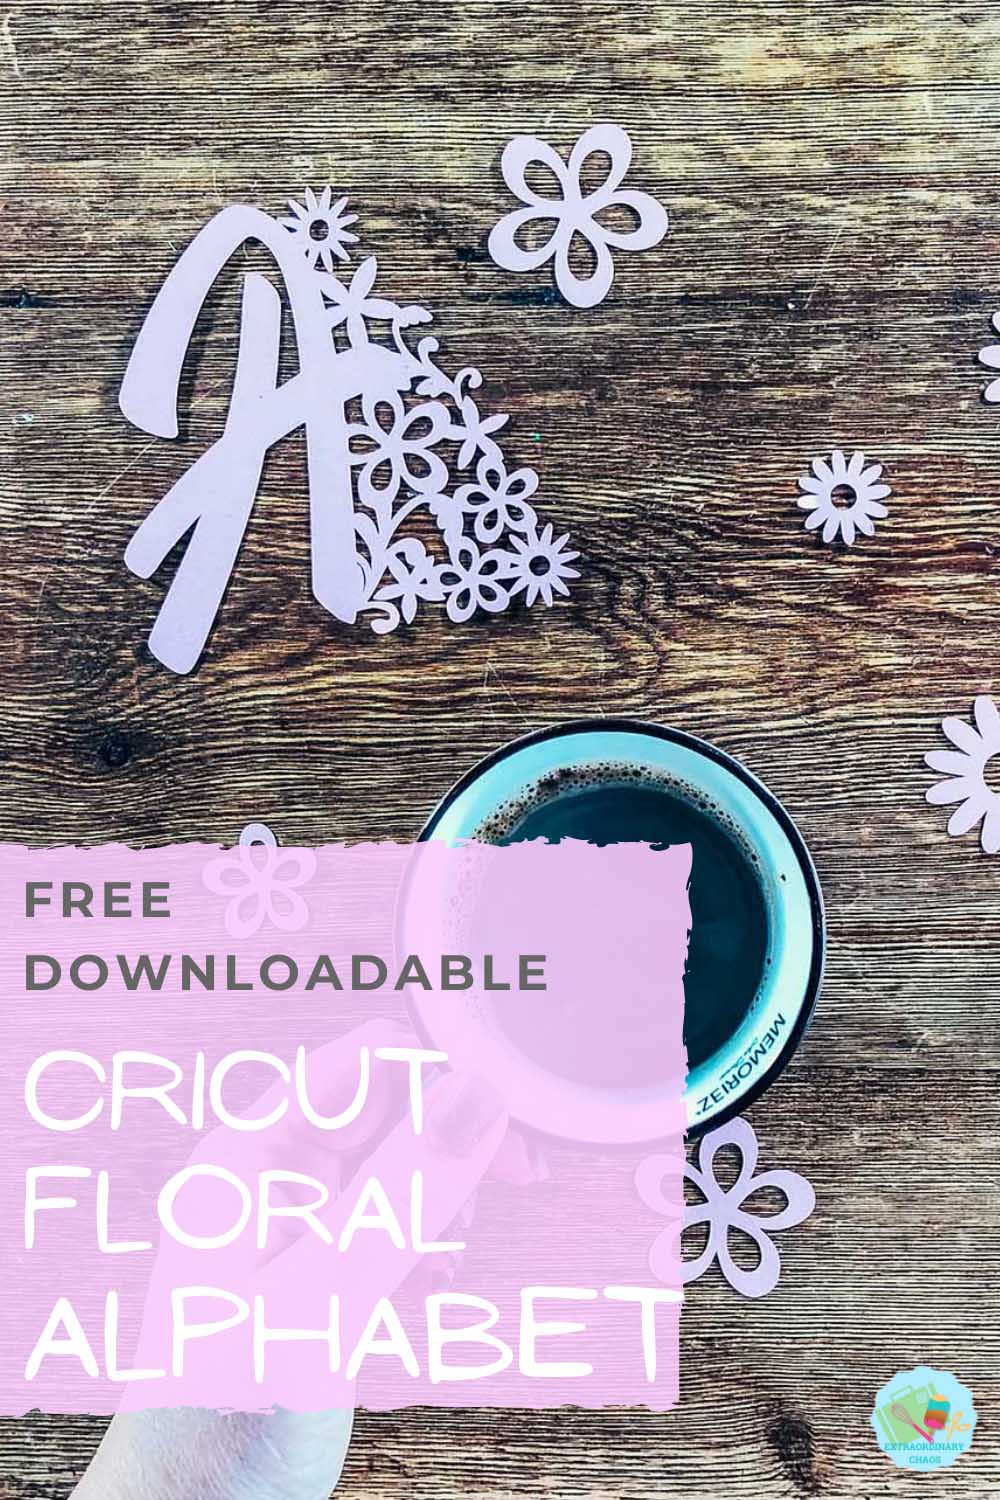 Free Downloadable Floral Cricut Alphabet For Crafting